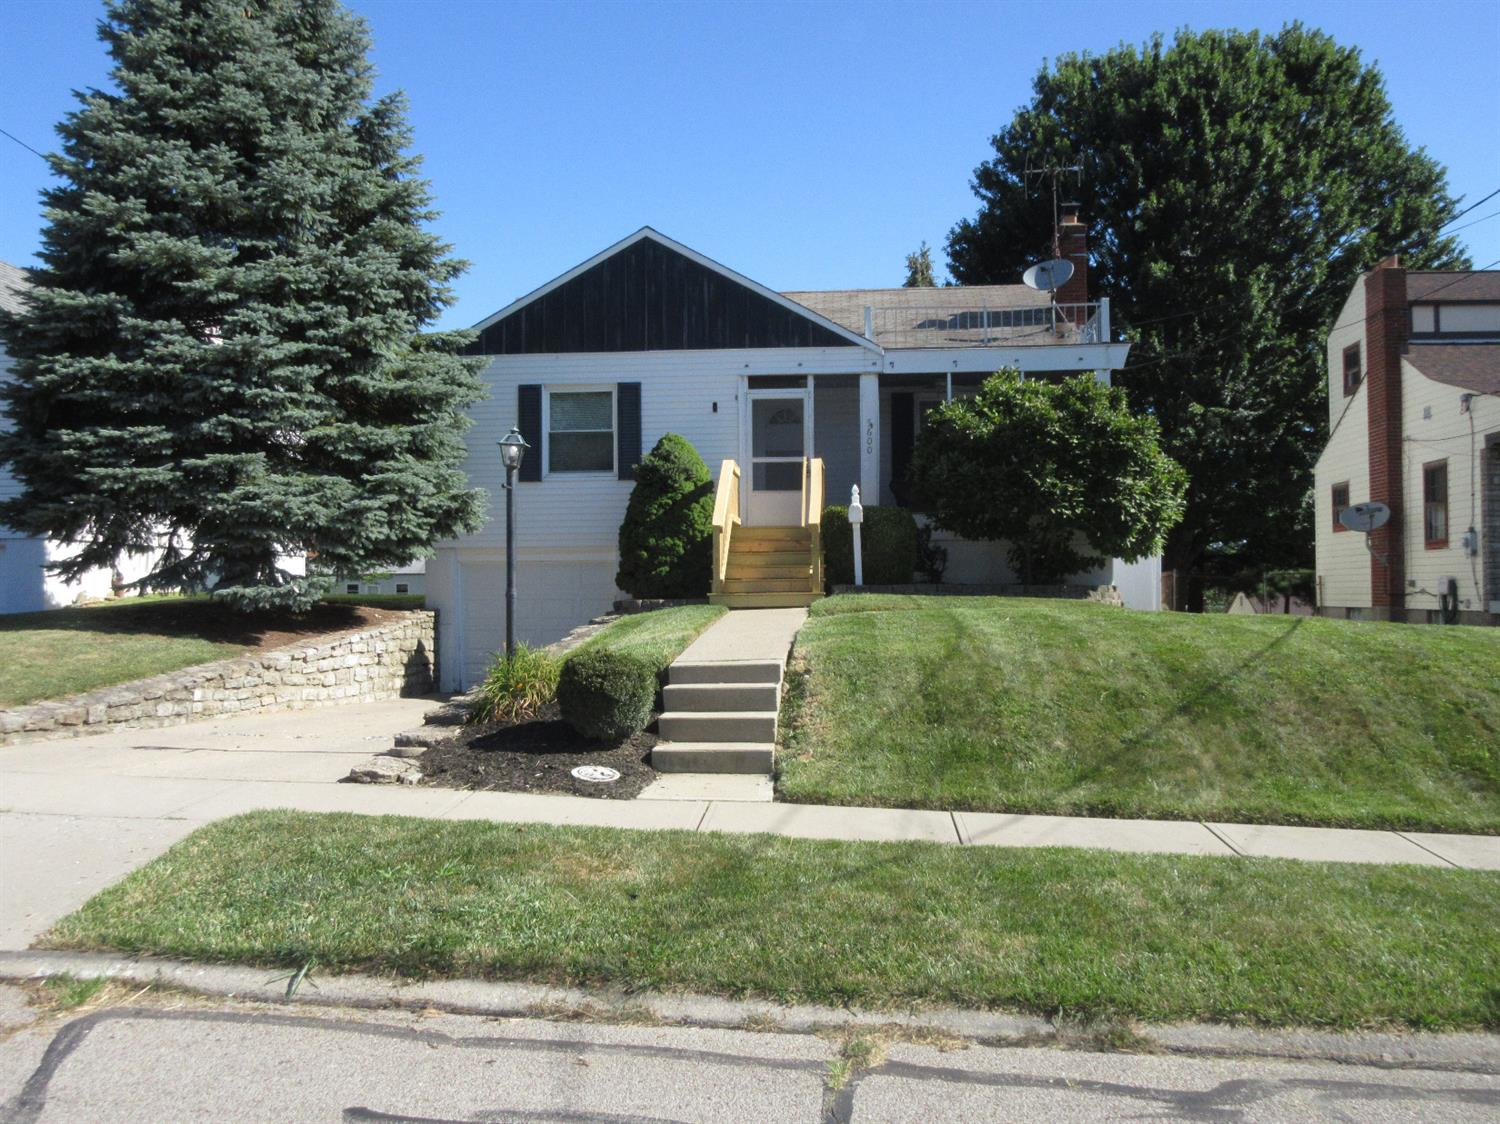 Photo 2 for 5600 Biscayne Ave Bridgetown, OH 45248